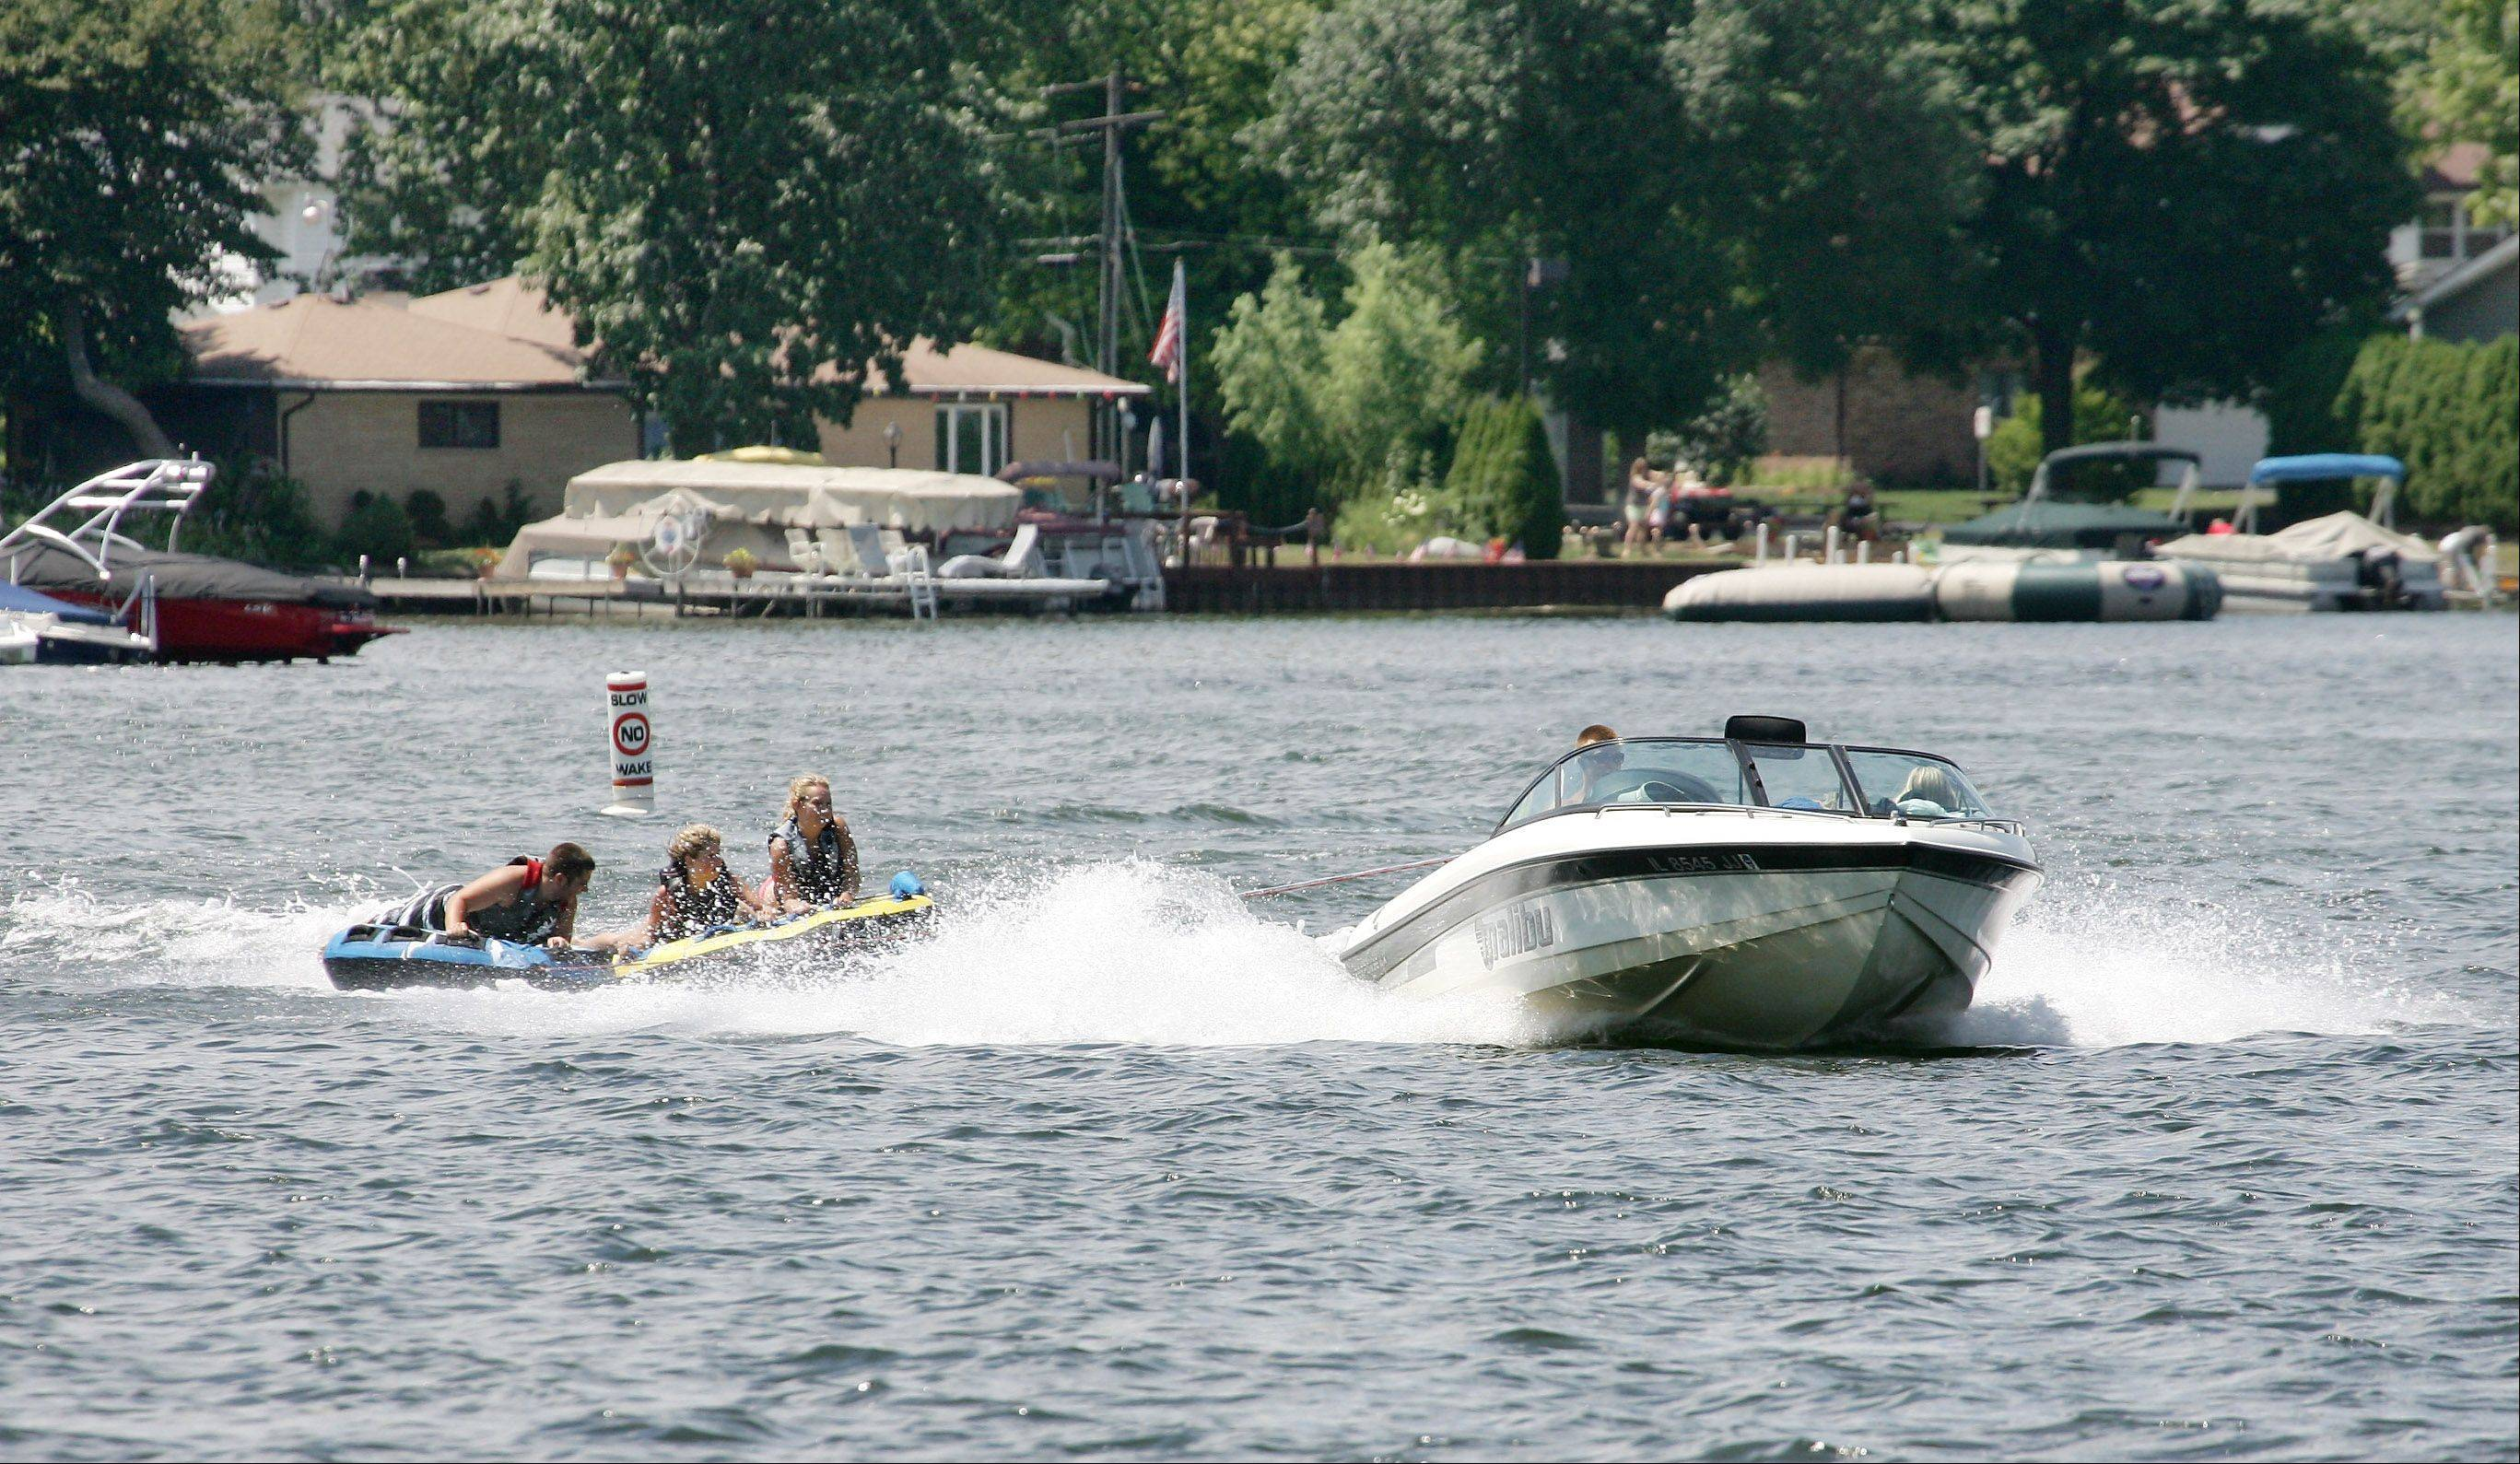 Gilbert R. Boucher II/gboucher@dailyherald.com ¬ Boating fun on Lake Zurich.